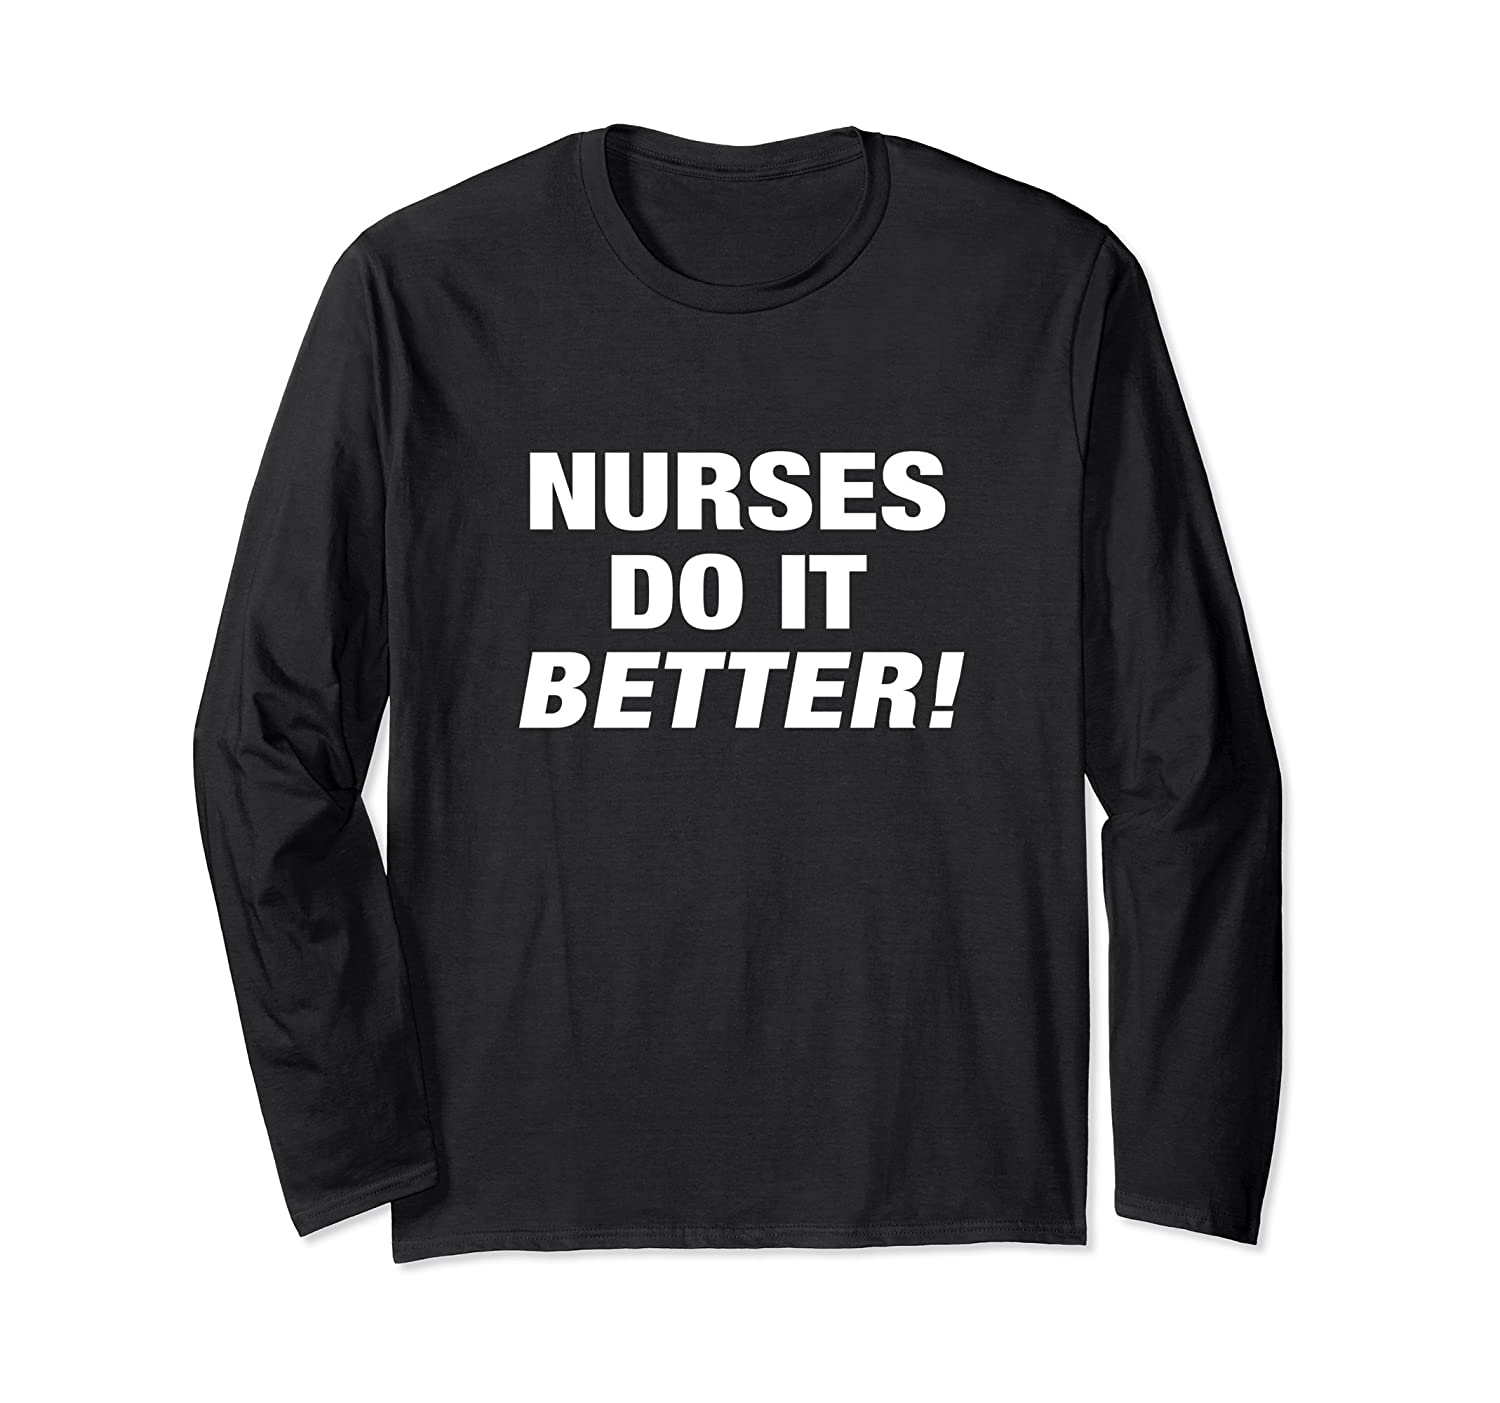 EXCLUSIVE NURSE T-SHIRT - NURSES DO IT BETTER-fa